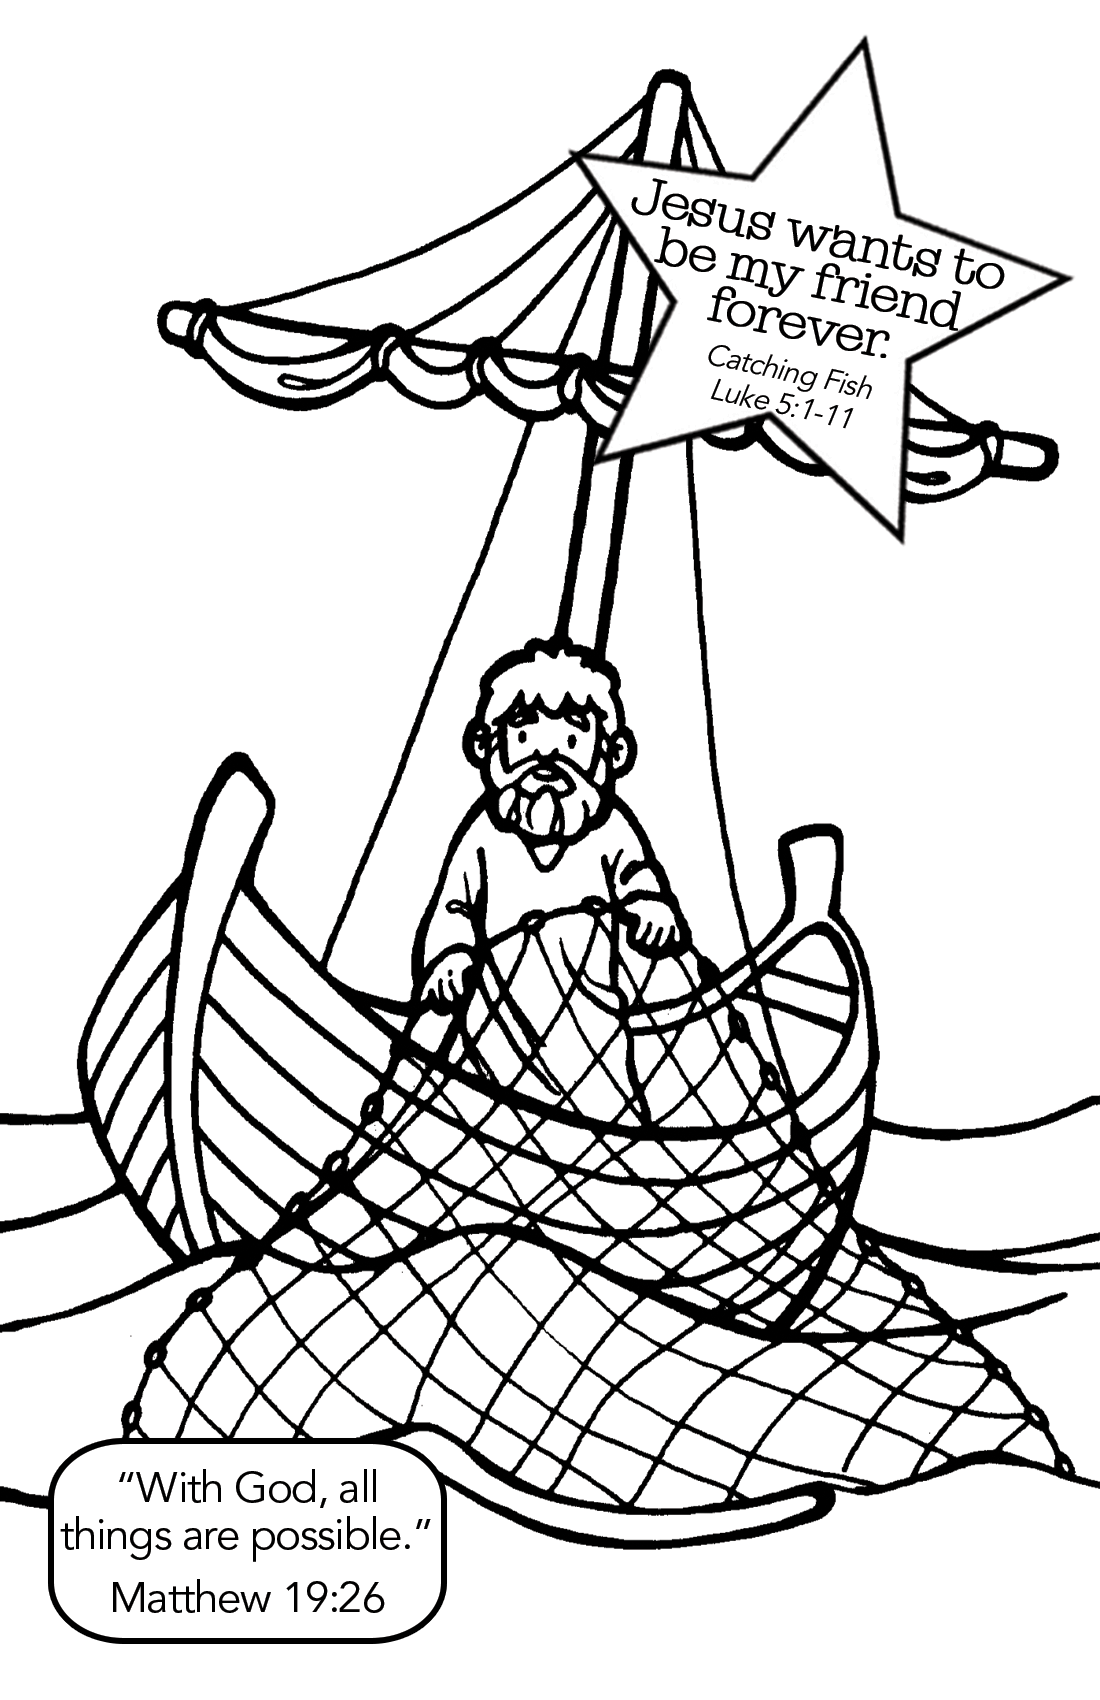 Free Coloring Pages Download Fishing With Jesus Page Yahoo Image Search Results Of